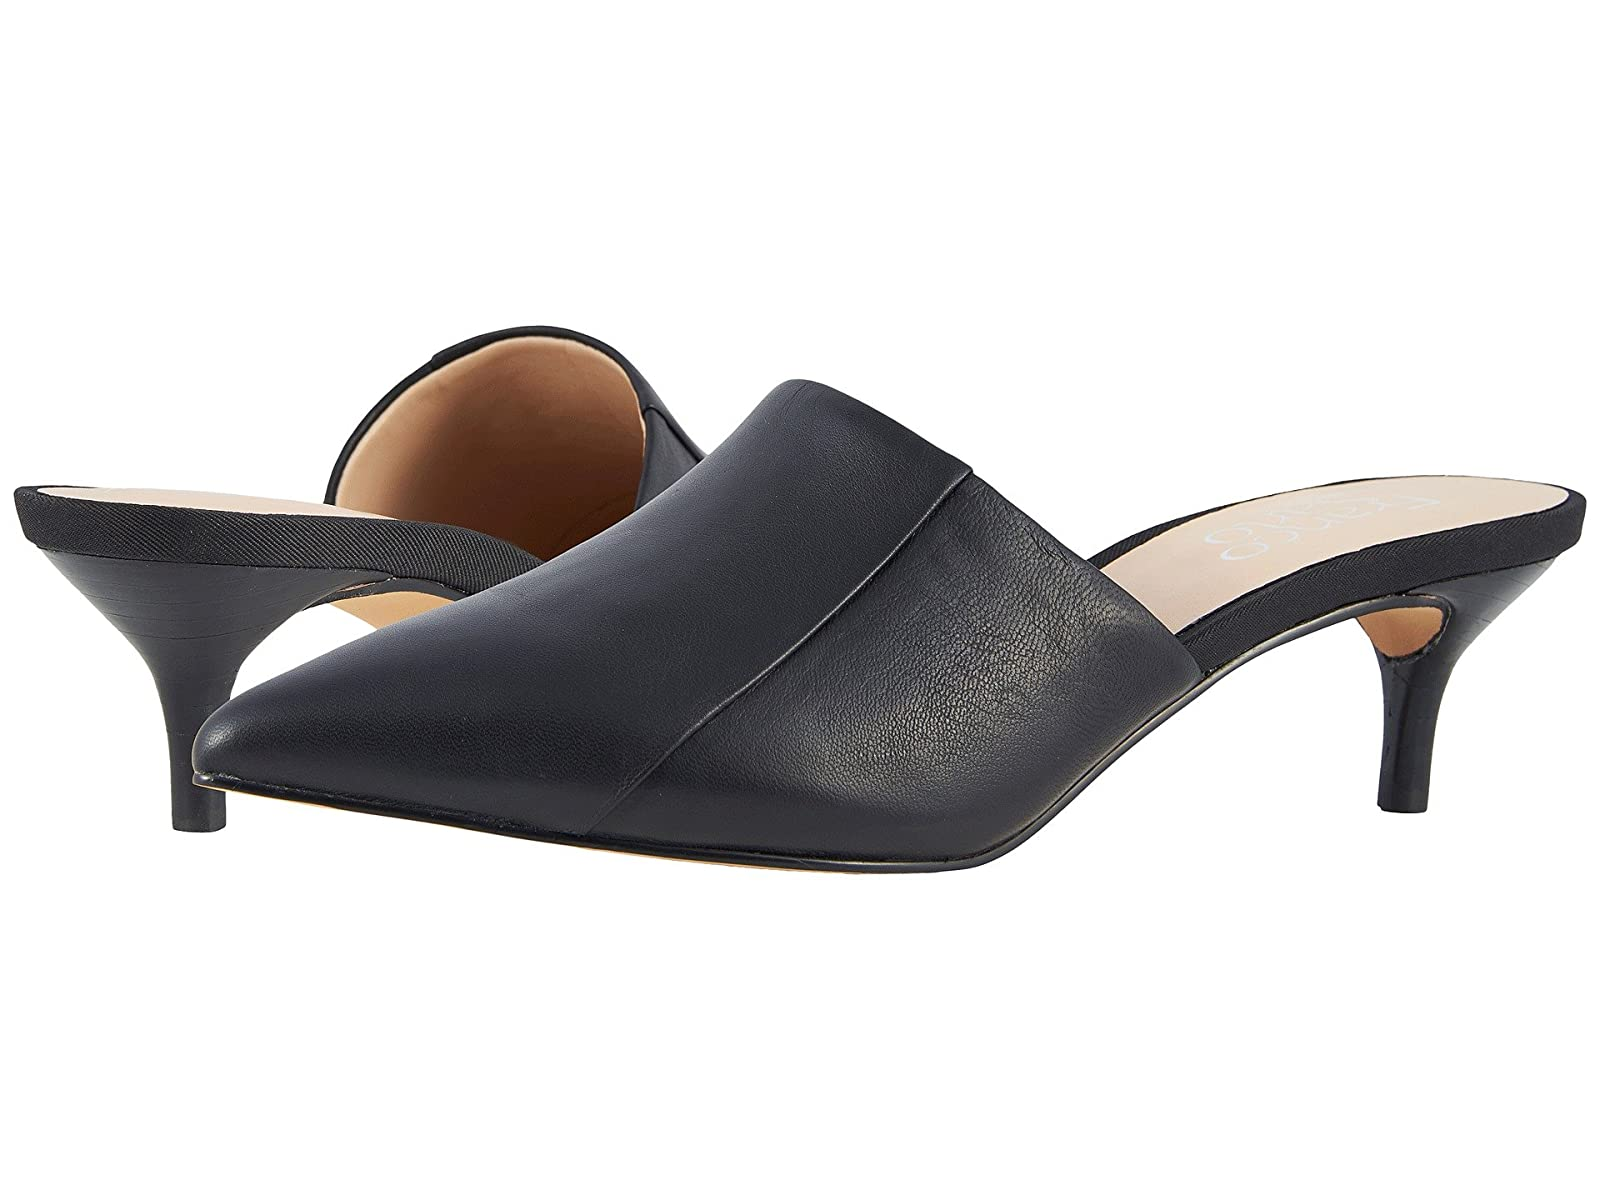 Franco Sarto DoxieCheap and distinctive eye-catching shoes